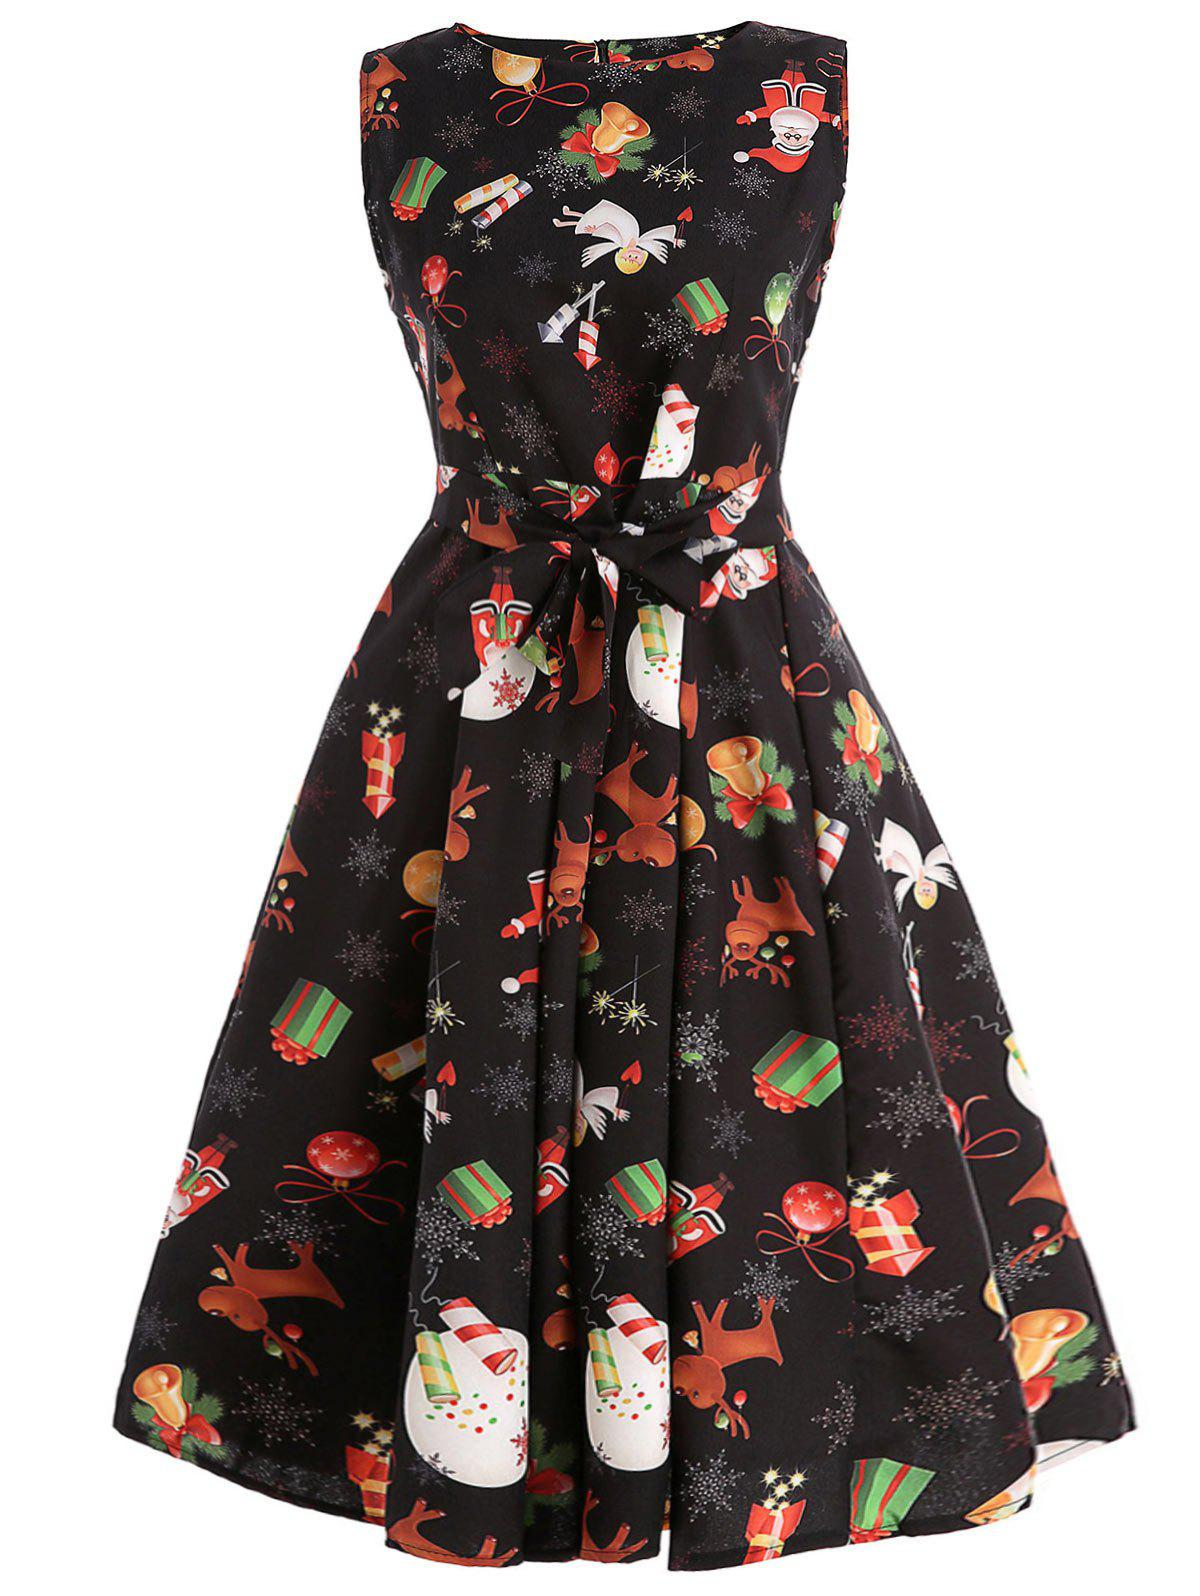 1bbb20e308 56% OFF   2019 Christmas Print Belted Skater Dress